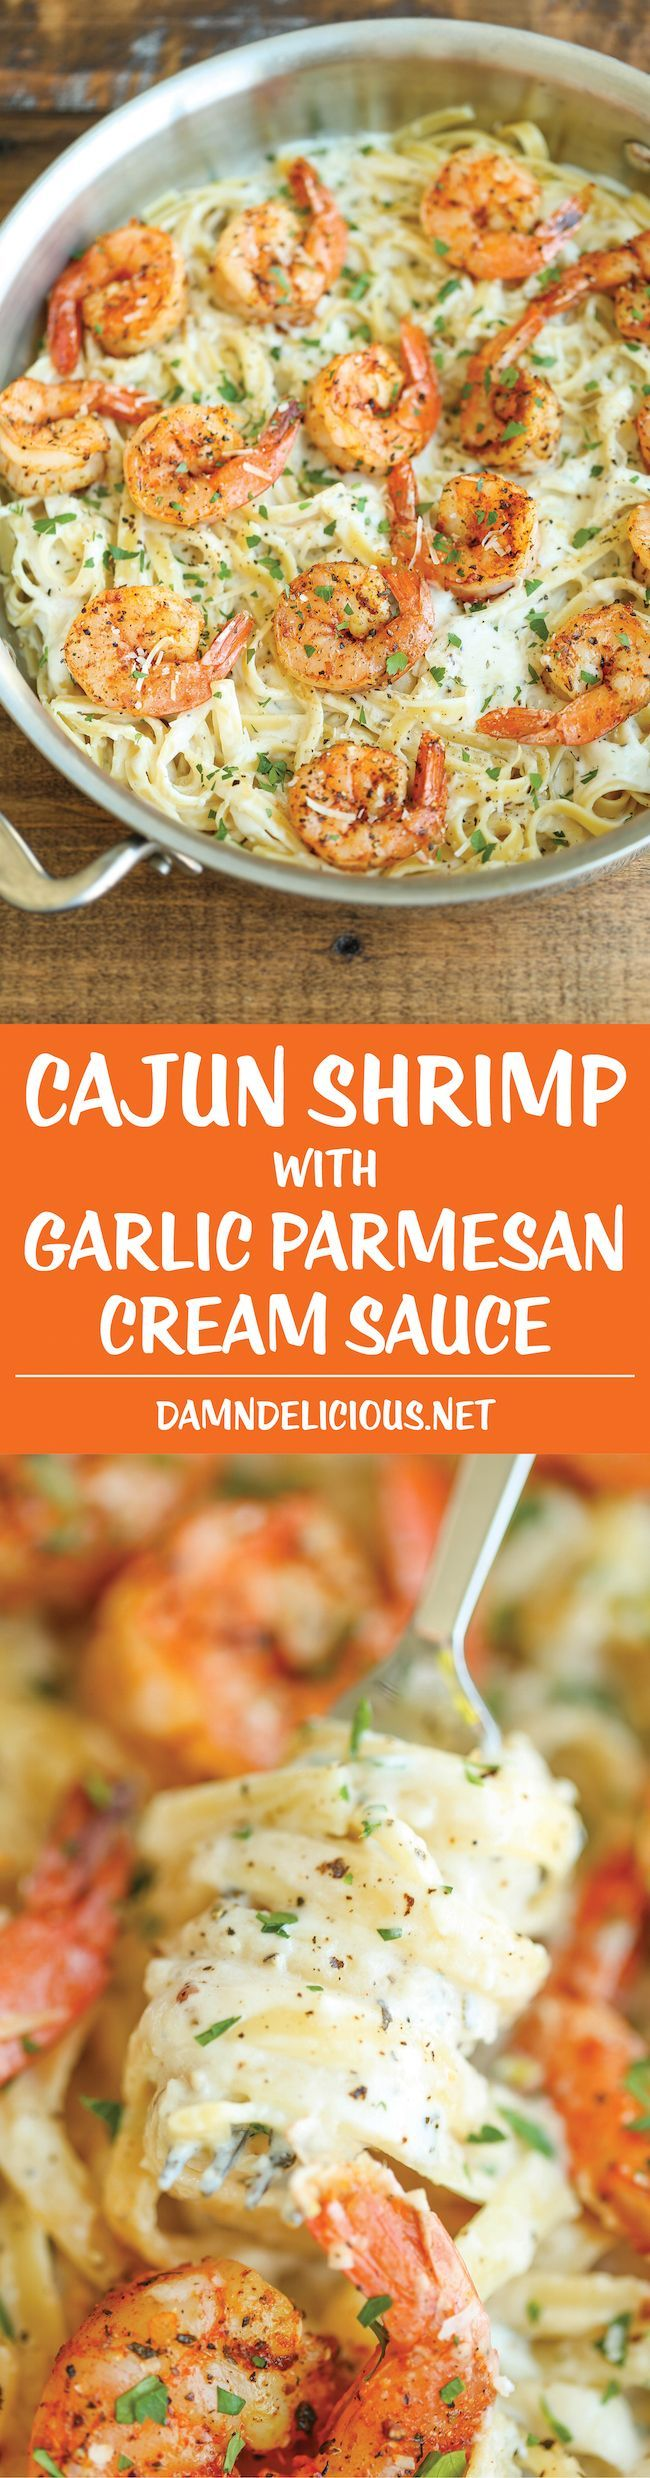 Cajun Shrimp with Garlic Parmesan Cream Sauce - The easiest weeknight meal with a homemade cream sauce that tastes delicious!